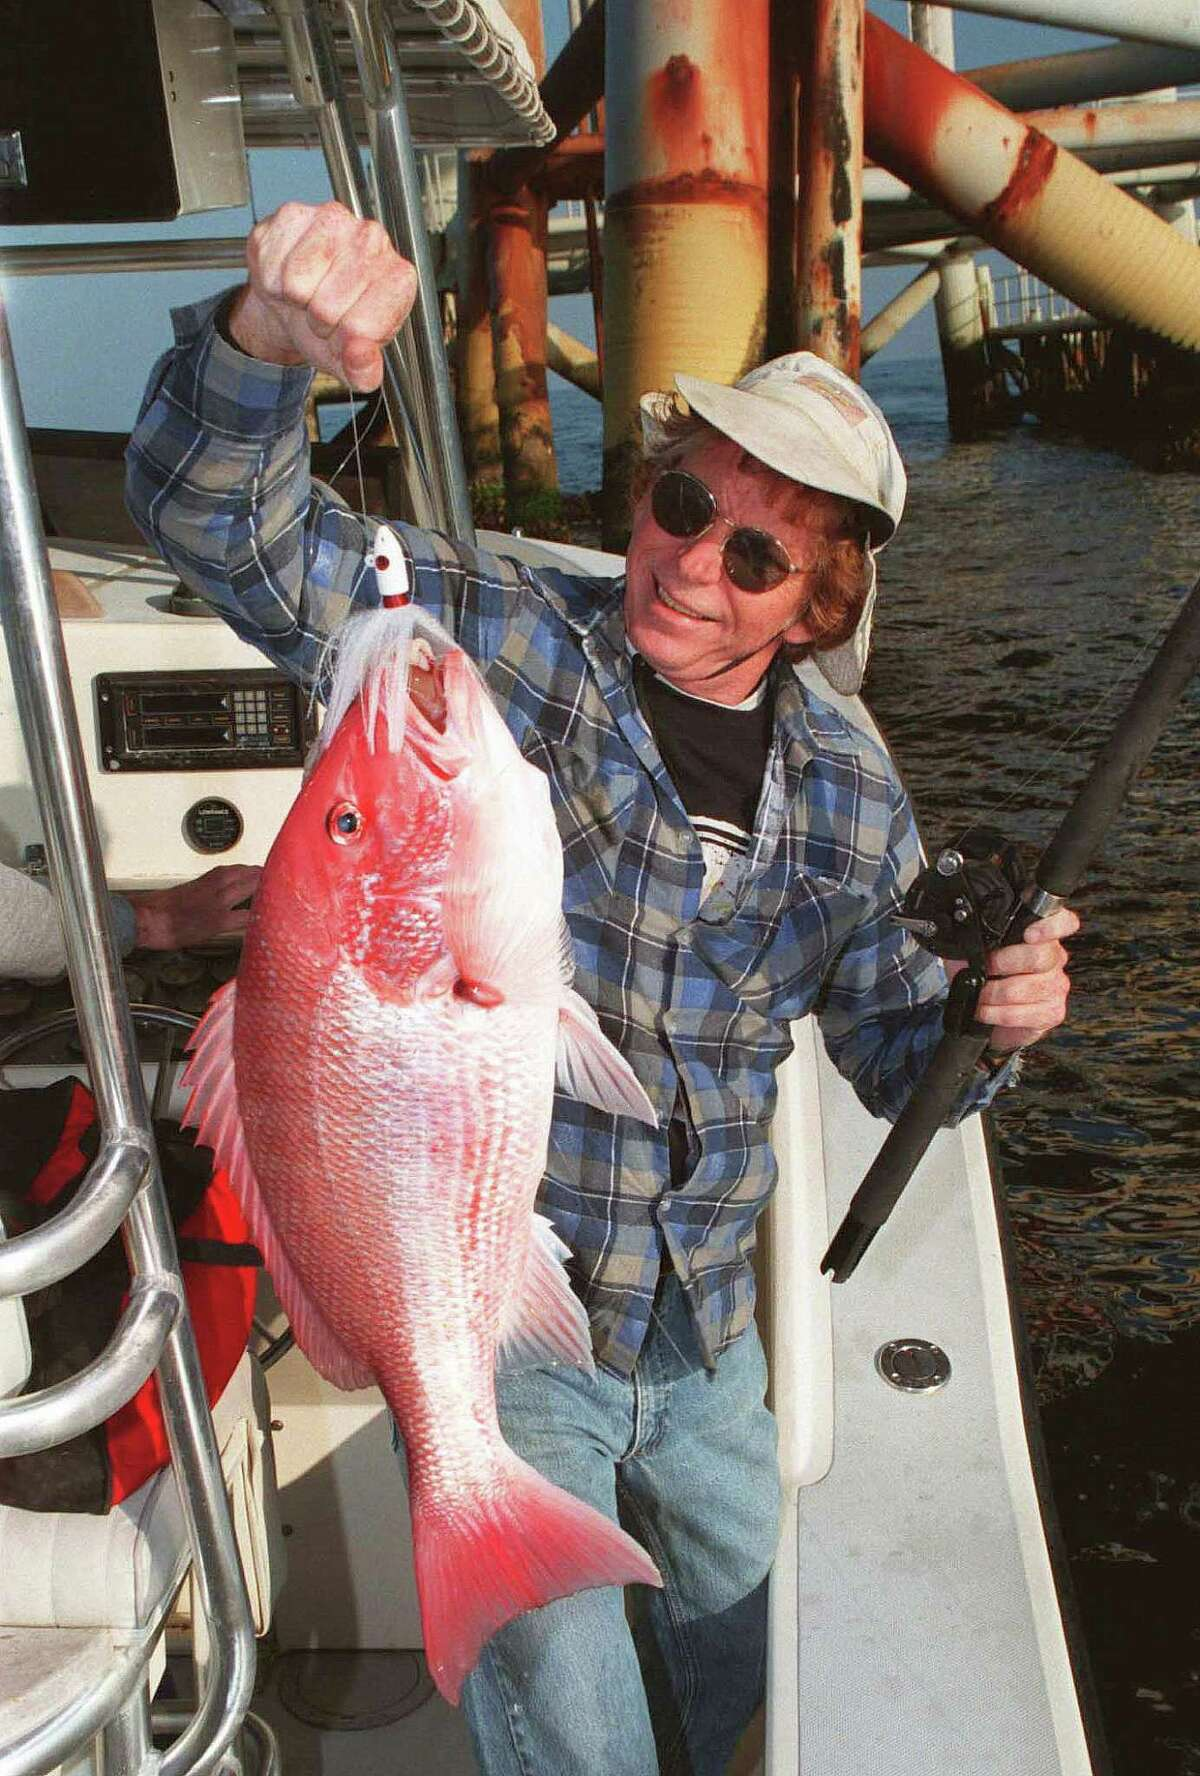 Despite a strong and growing red snapper population that has fisheries managers considering increasing the annual catch quota, the 2015 recreational fishing season for red snapper in federal waters of the Gulf of Mexico, scheduled to begin June 1, could be open for less than a week for anglers aboard private boats.